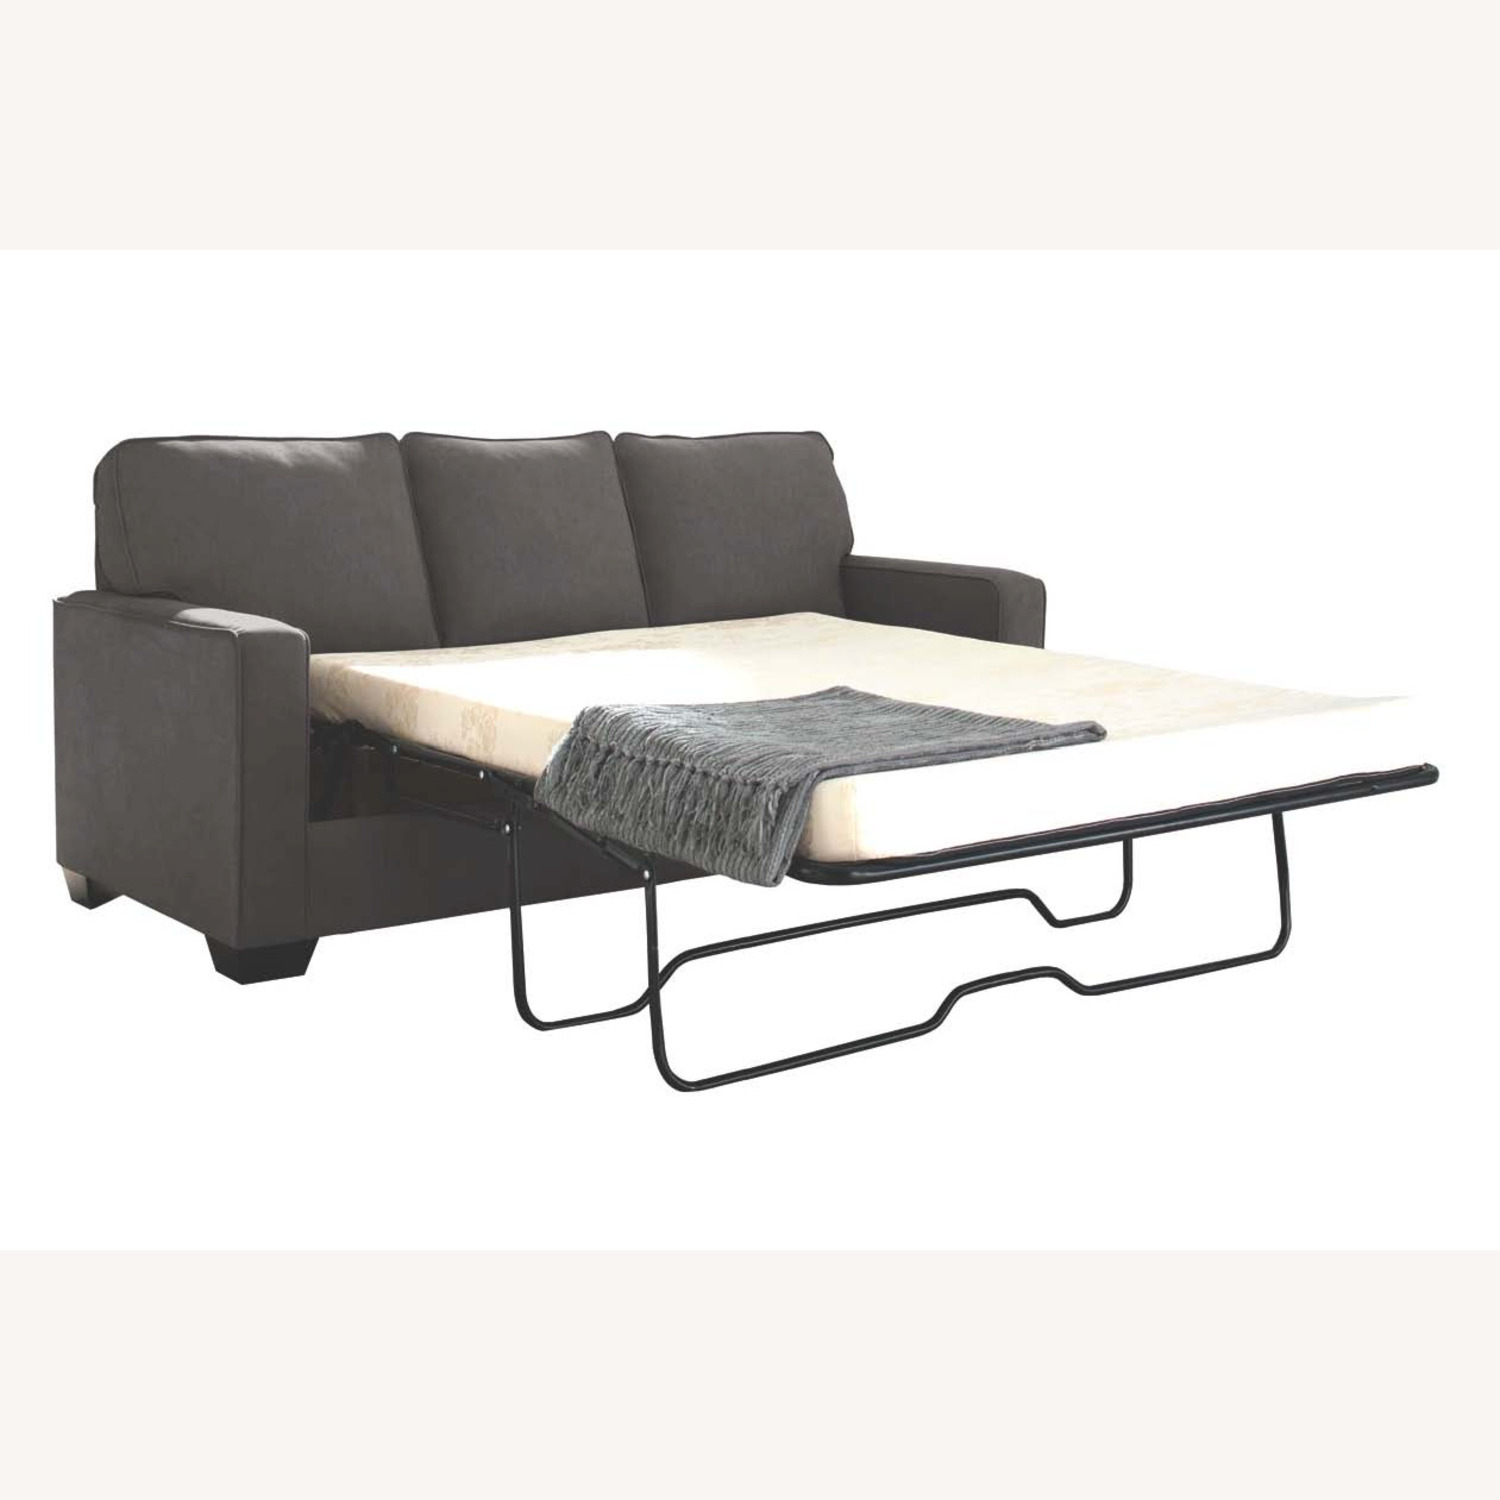 Ashley Furniture ZEB Sleeper Sofa - image-15